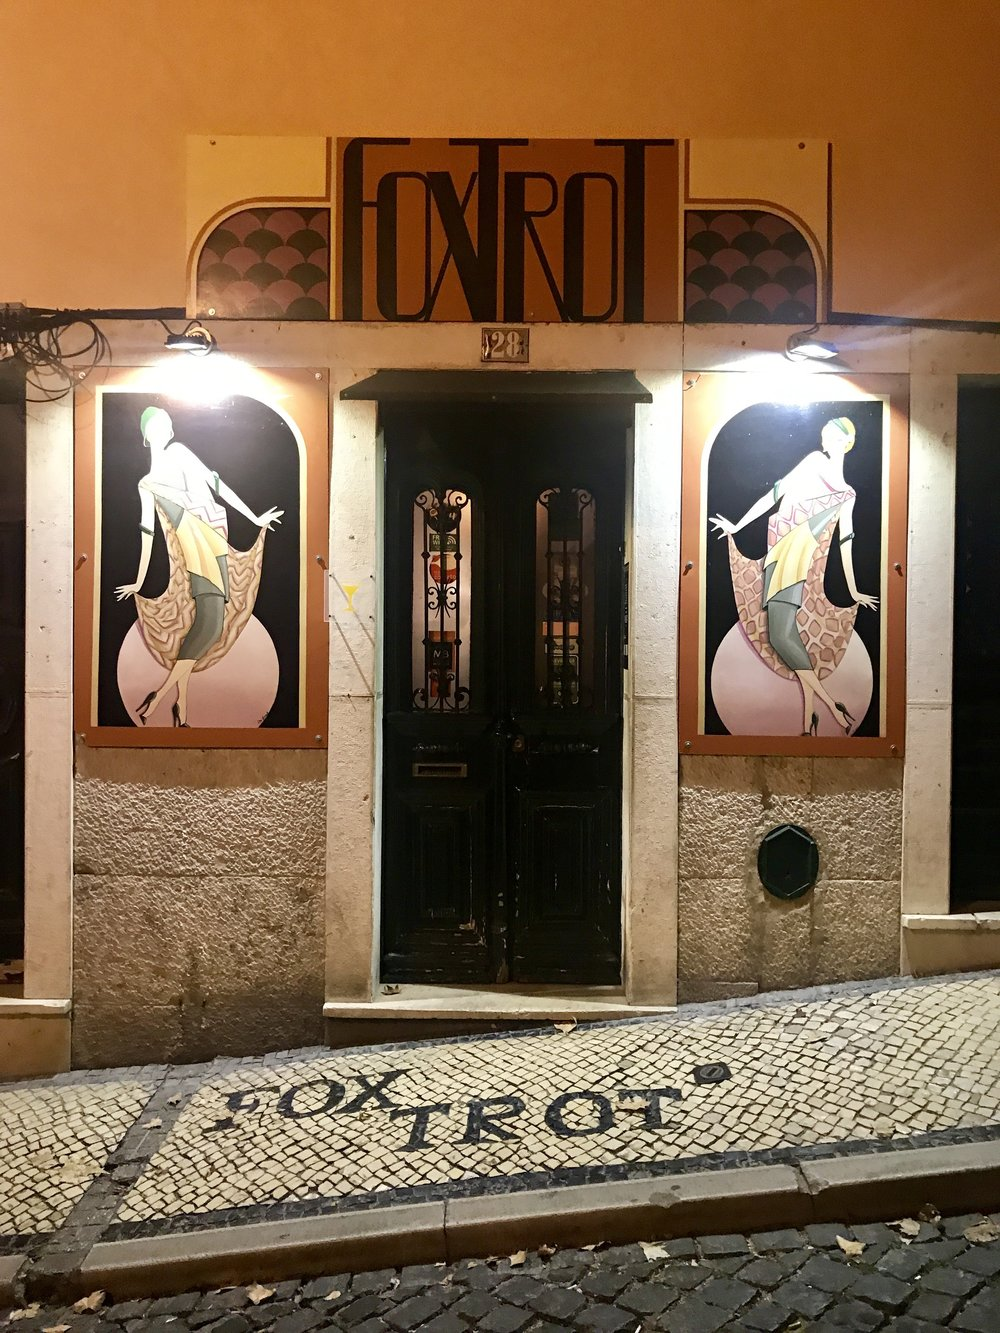 Another favorite bar of ours was  Foxtrot . Again, you have the ring the doorbell to be let in. People say this bar is the best-kept secret of Lisbon. The bartenders are super helpful, the drinks are unique, and the decor is too cool.